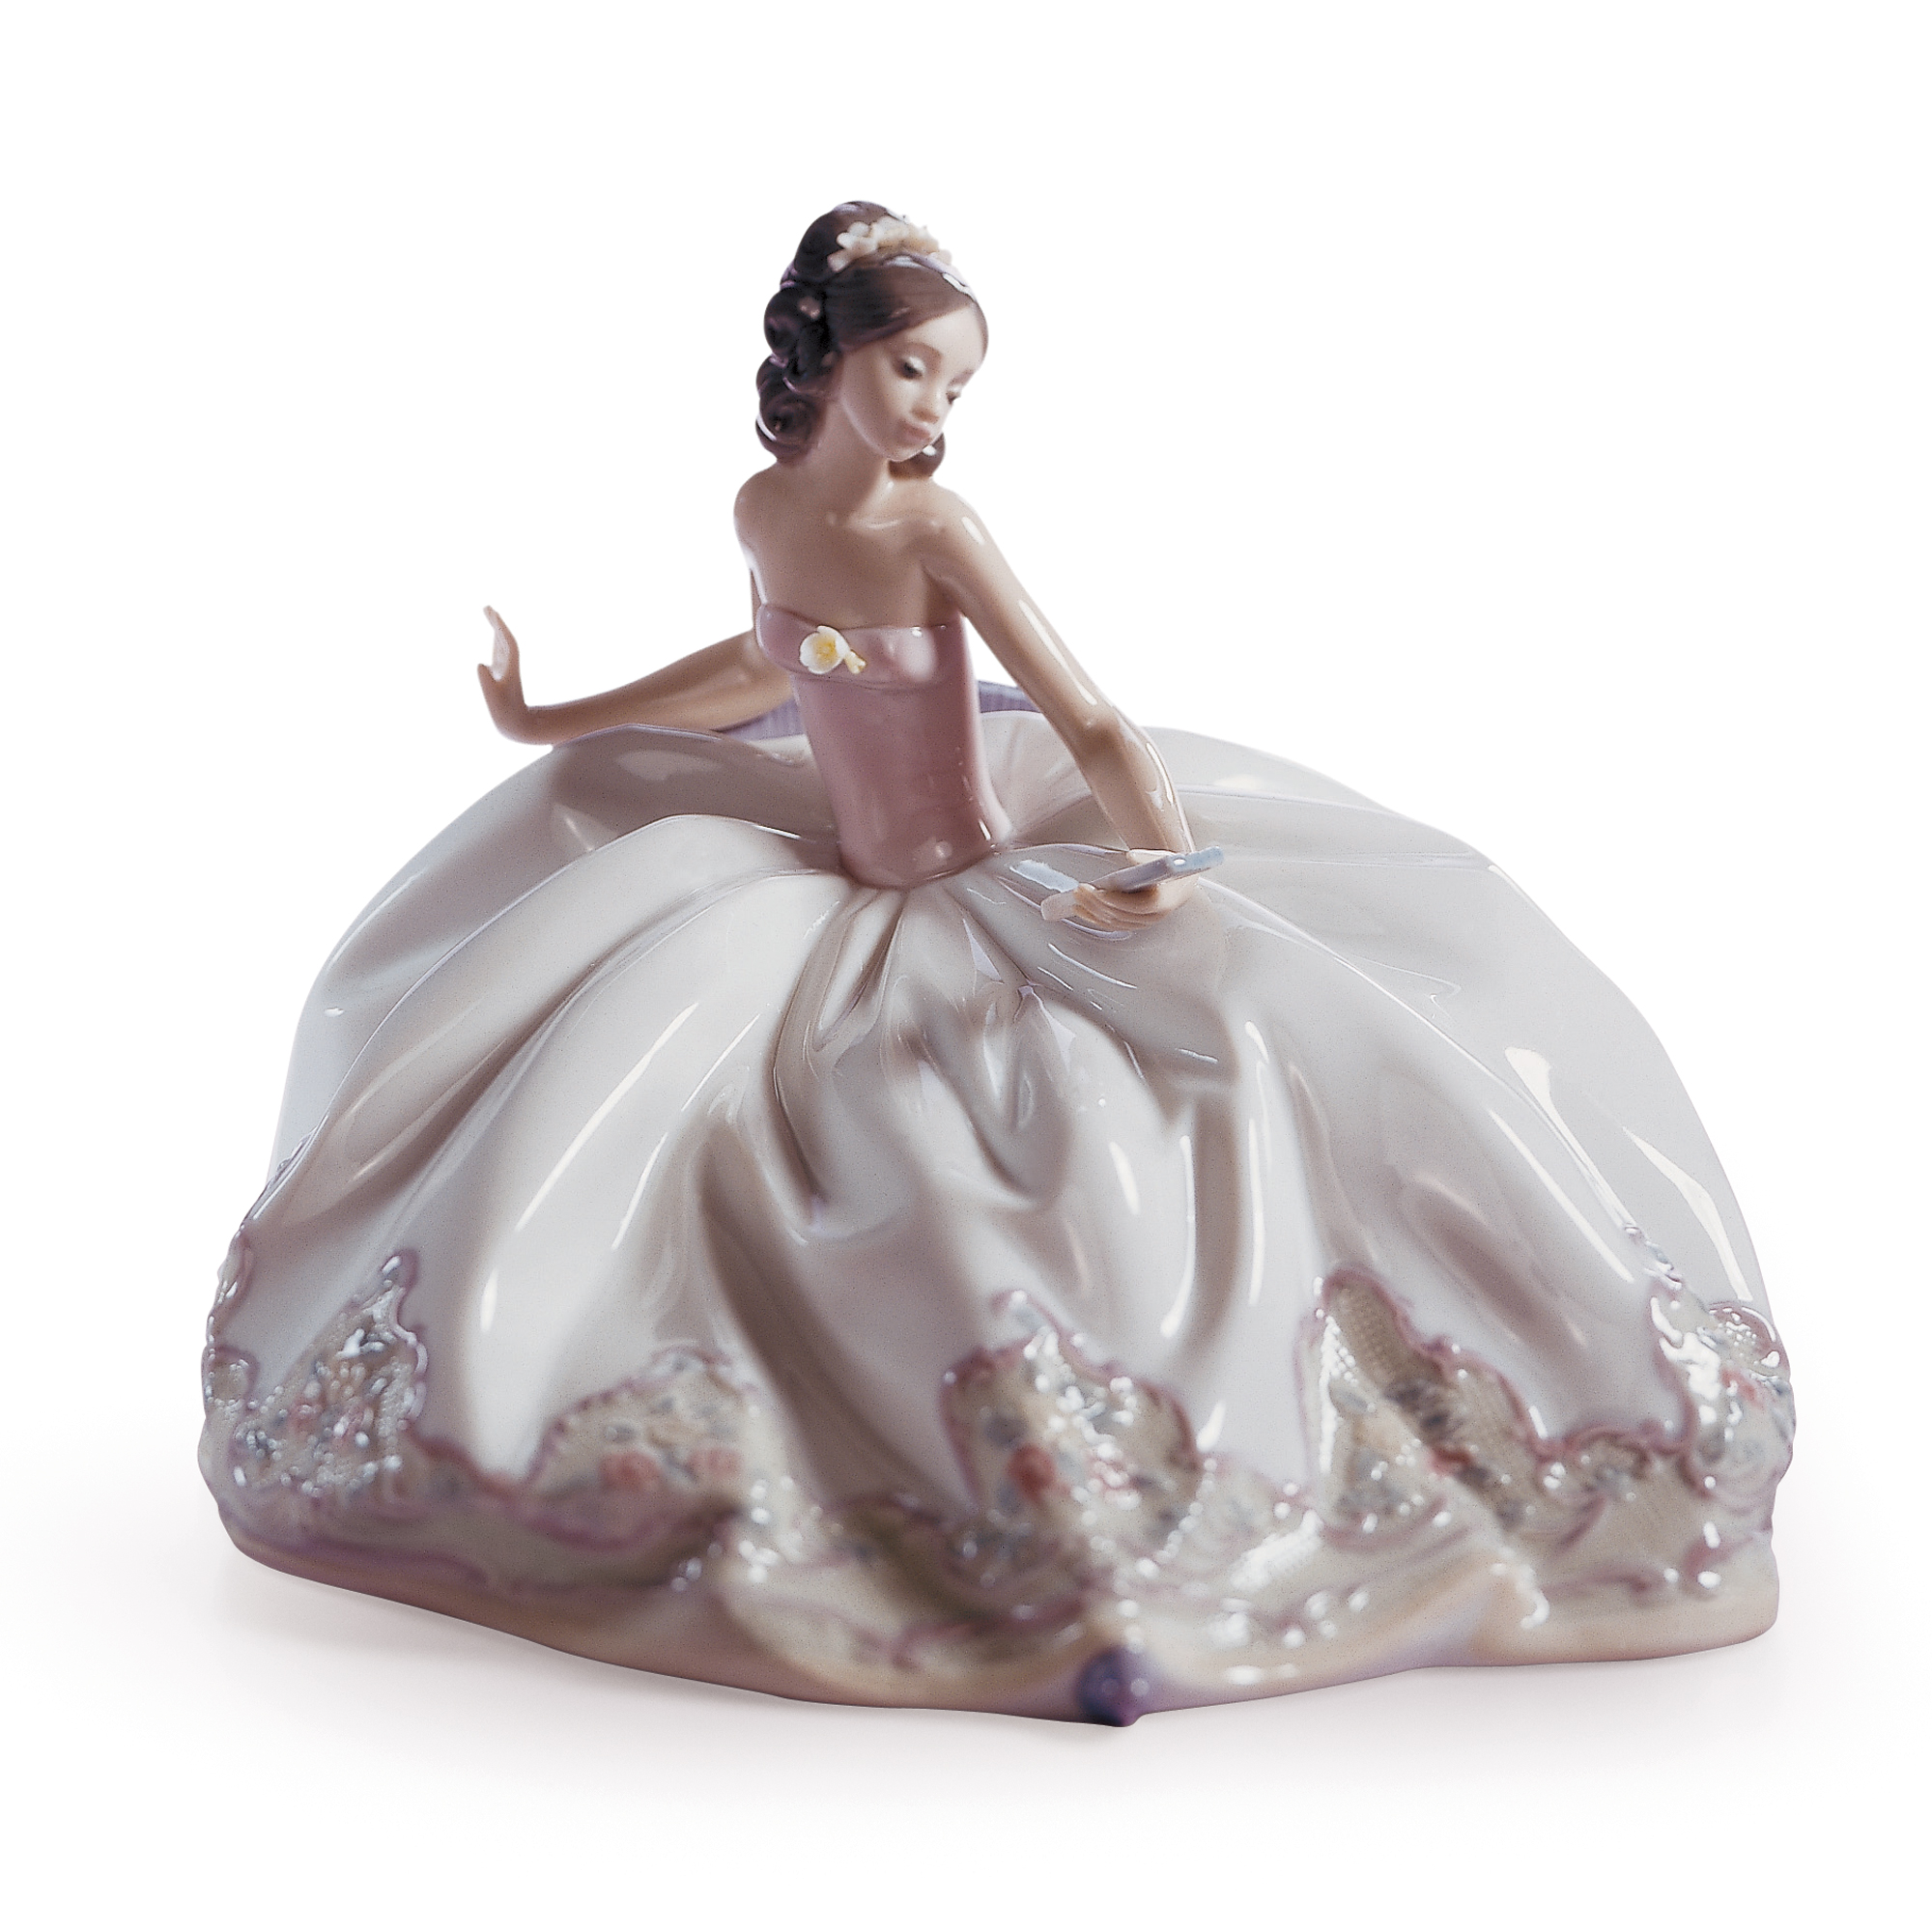 At the Ball 01005859 - Lladro Romanticism